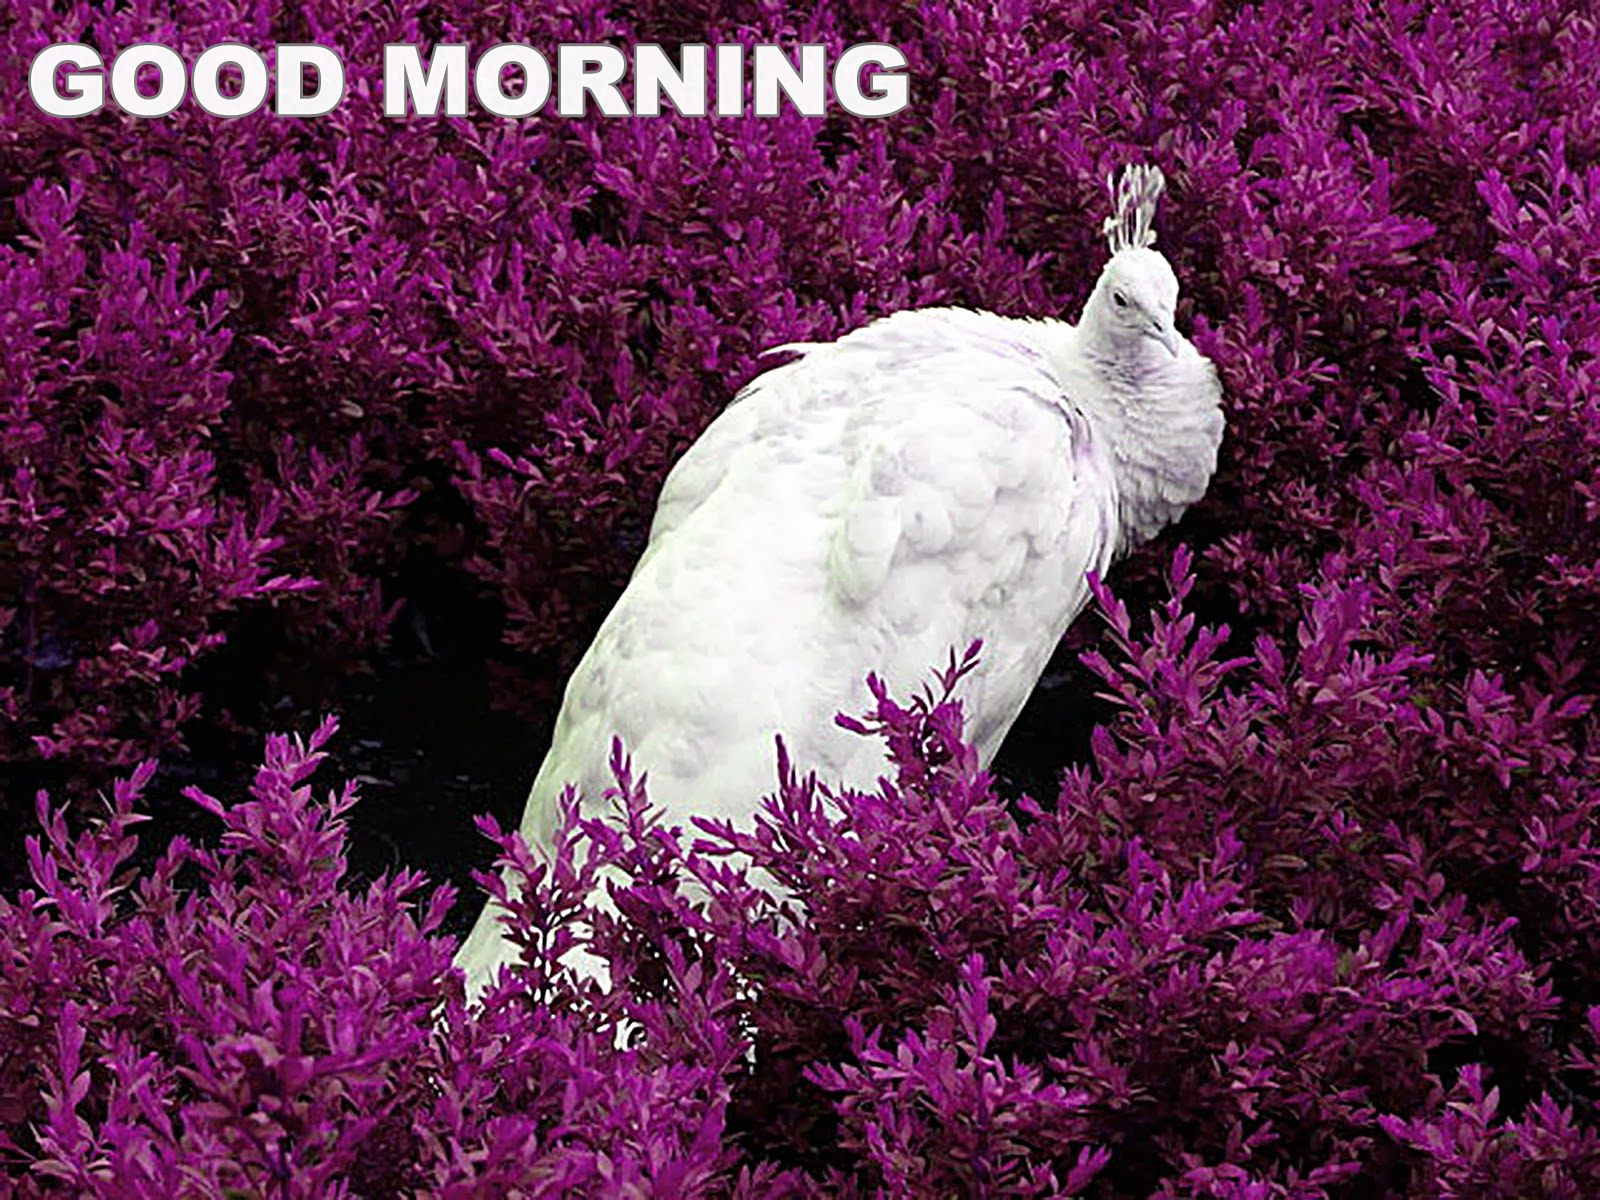 Good Morning Boyfriend In French : Good morning with white peacock